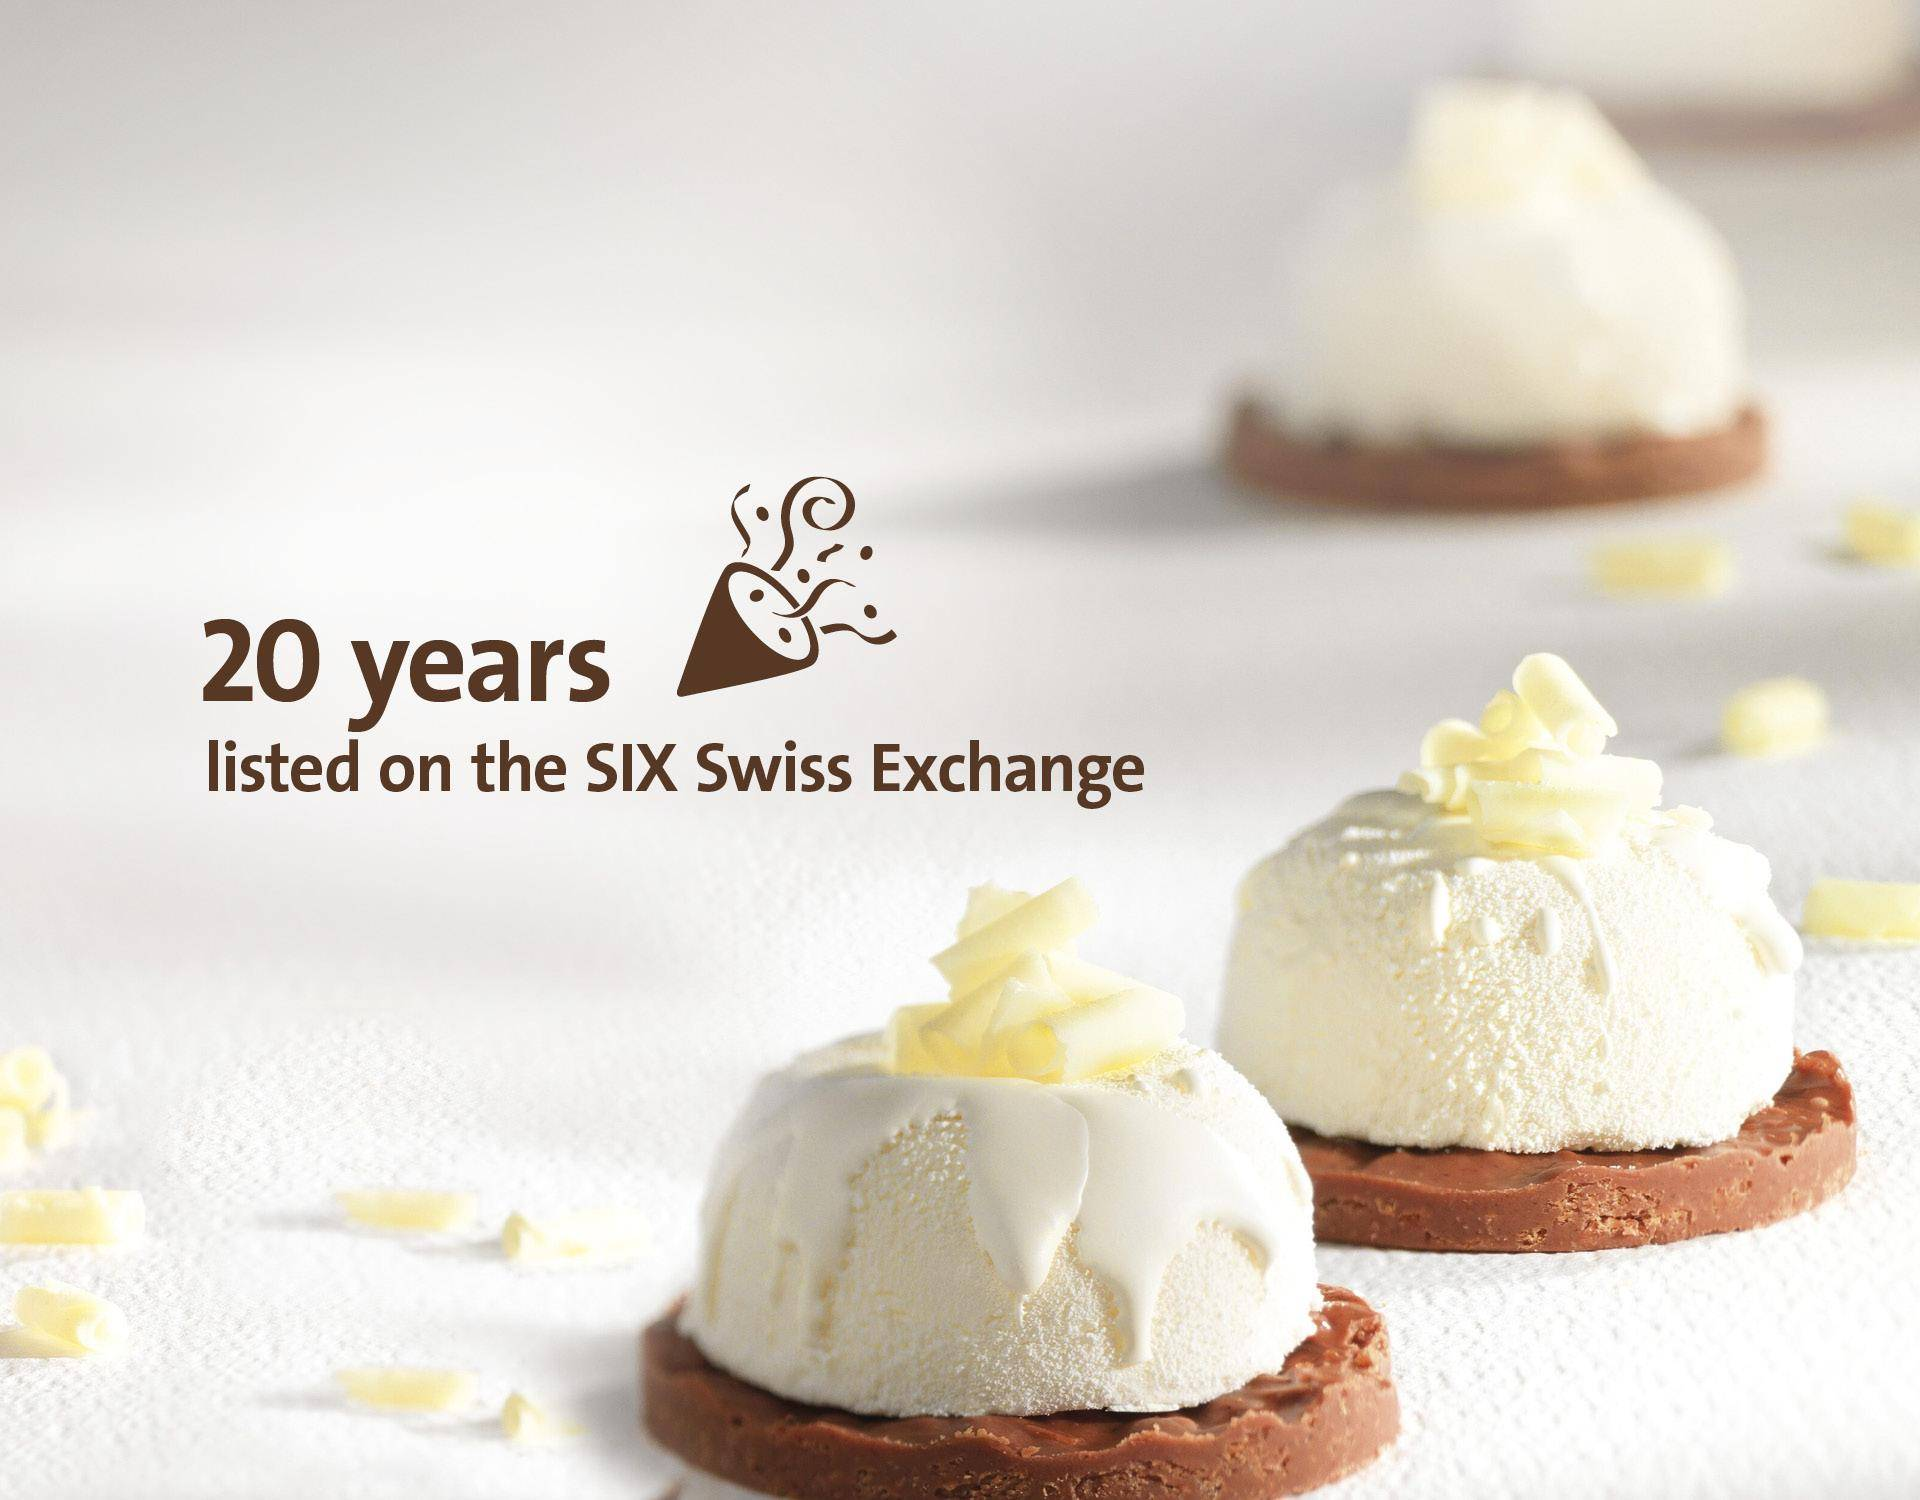 Image Slider 20 years SIX Swiss Exchange Fiscal Year 2017/18 Barry Callebaut Group